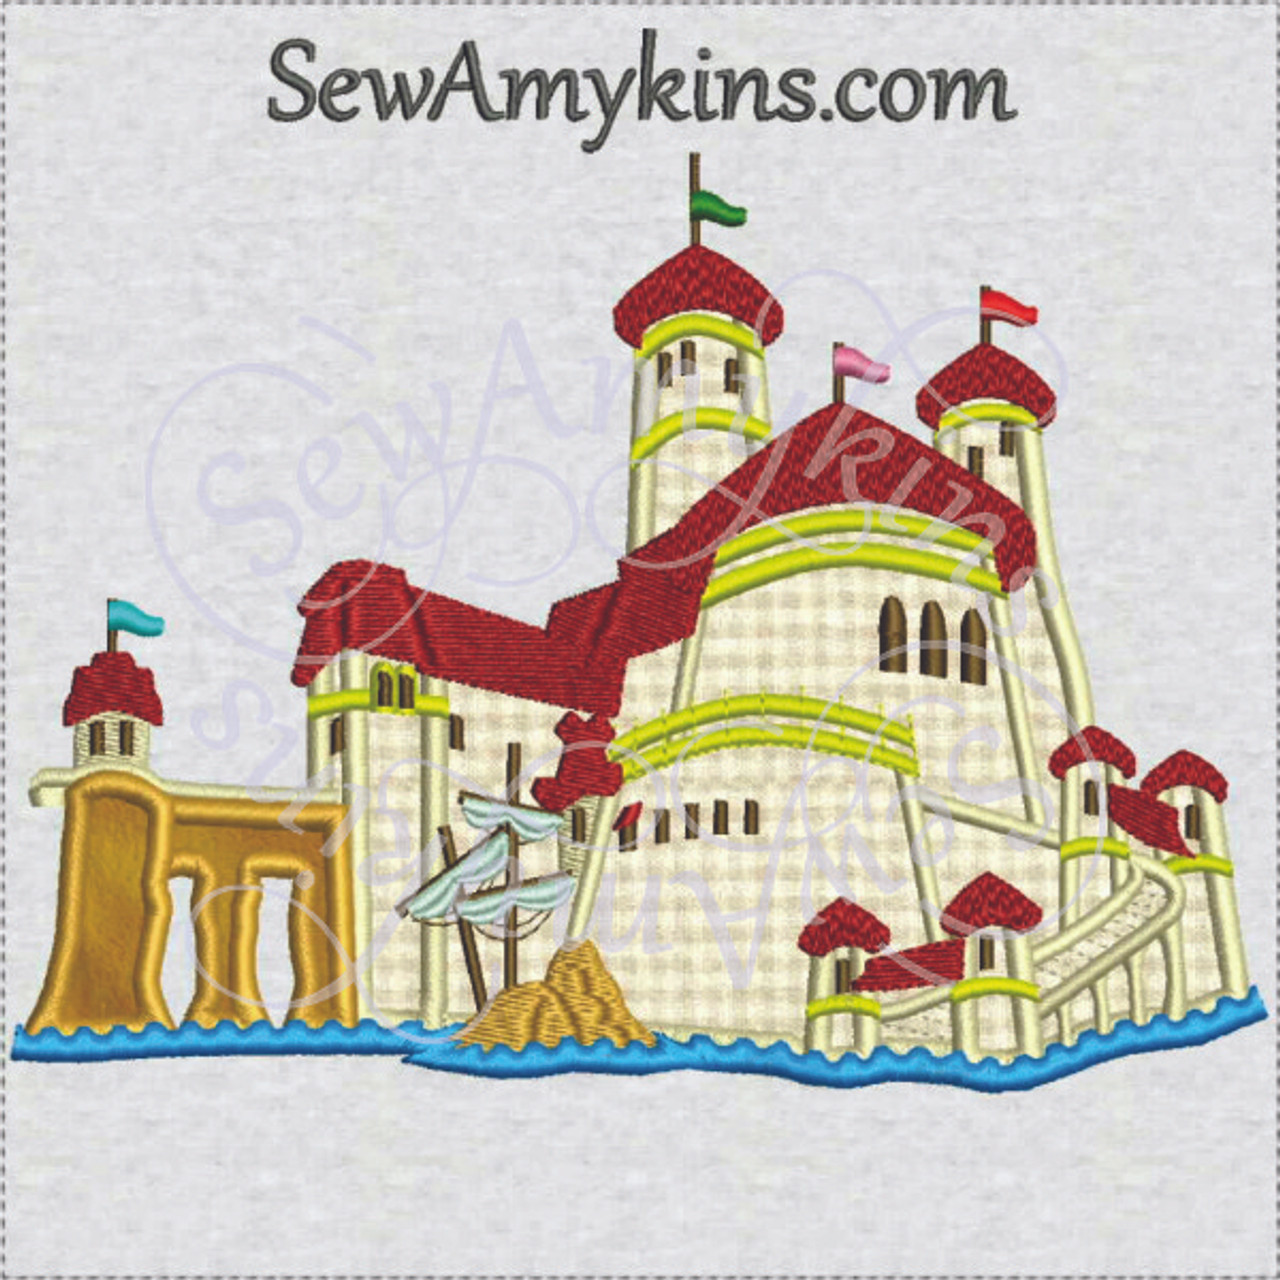 New C Lighthouse Embroidery Designs on lighthouse embroidery clip art, lighthouse quilts, lighthouse stencil designs, lighthouse cake designs, lighthouse clothing for women, lighthouse home designs, lighthouse painting designs, lighthouse embroidery kits, lighthouse art designs, lighthouse tumblr,